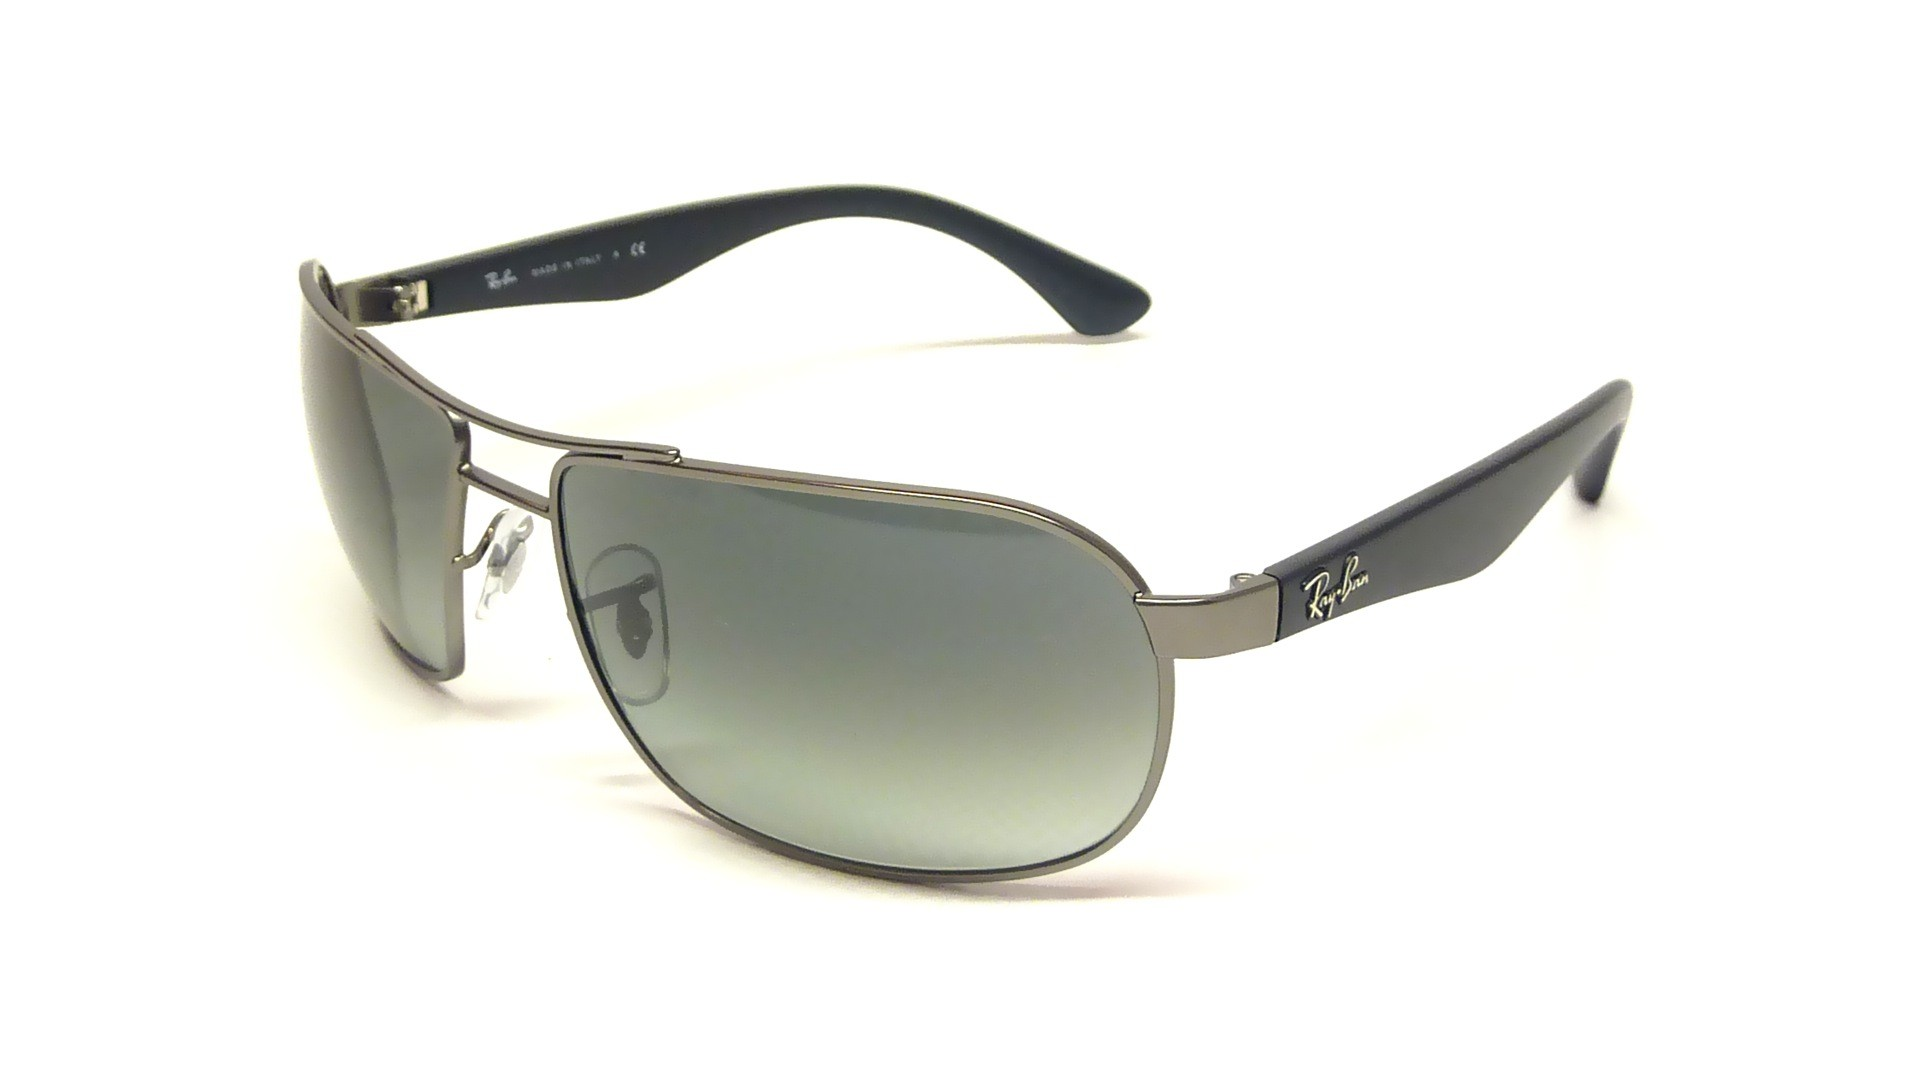 8ce07032690db Ray Ban Aviators Wikihow « One More Soul